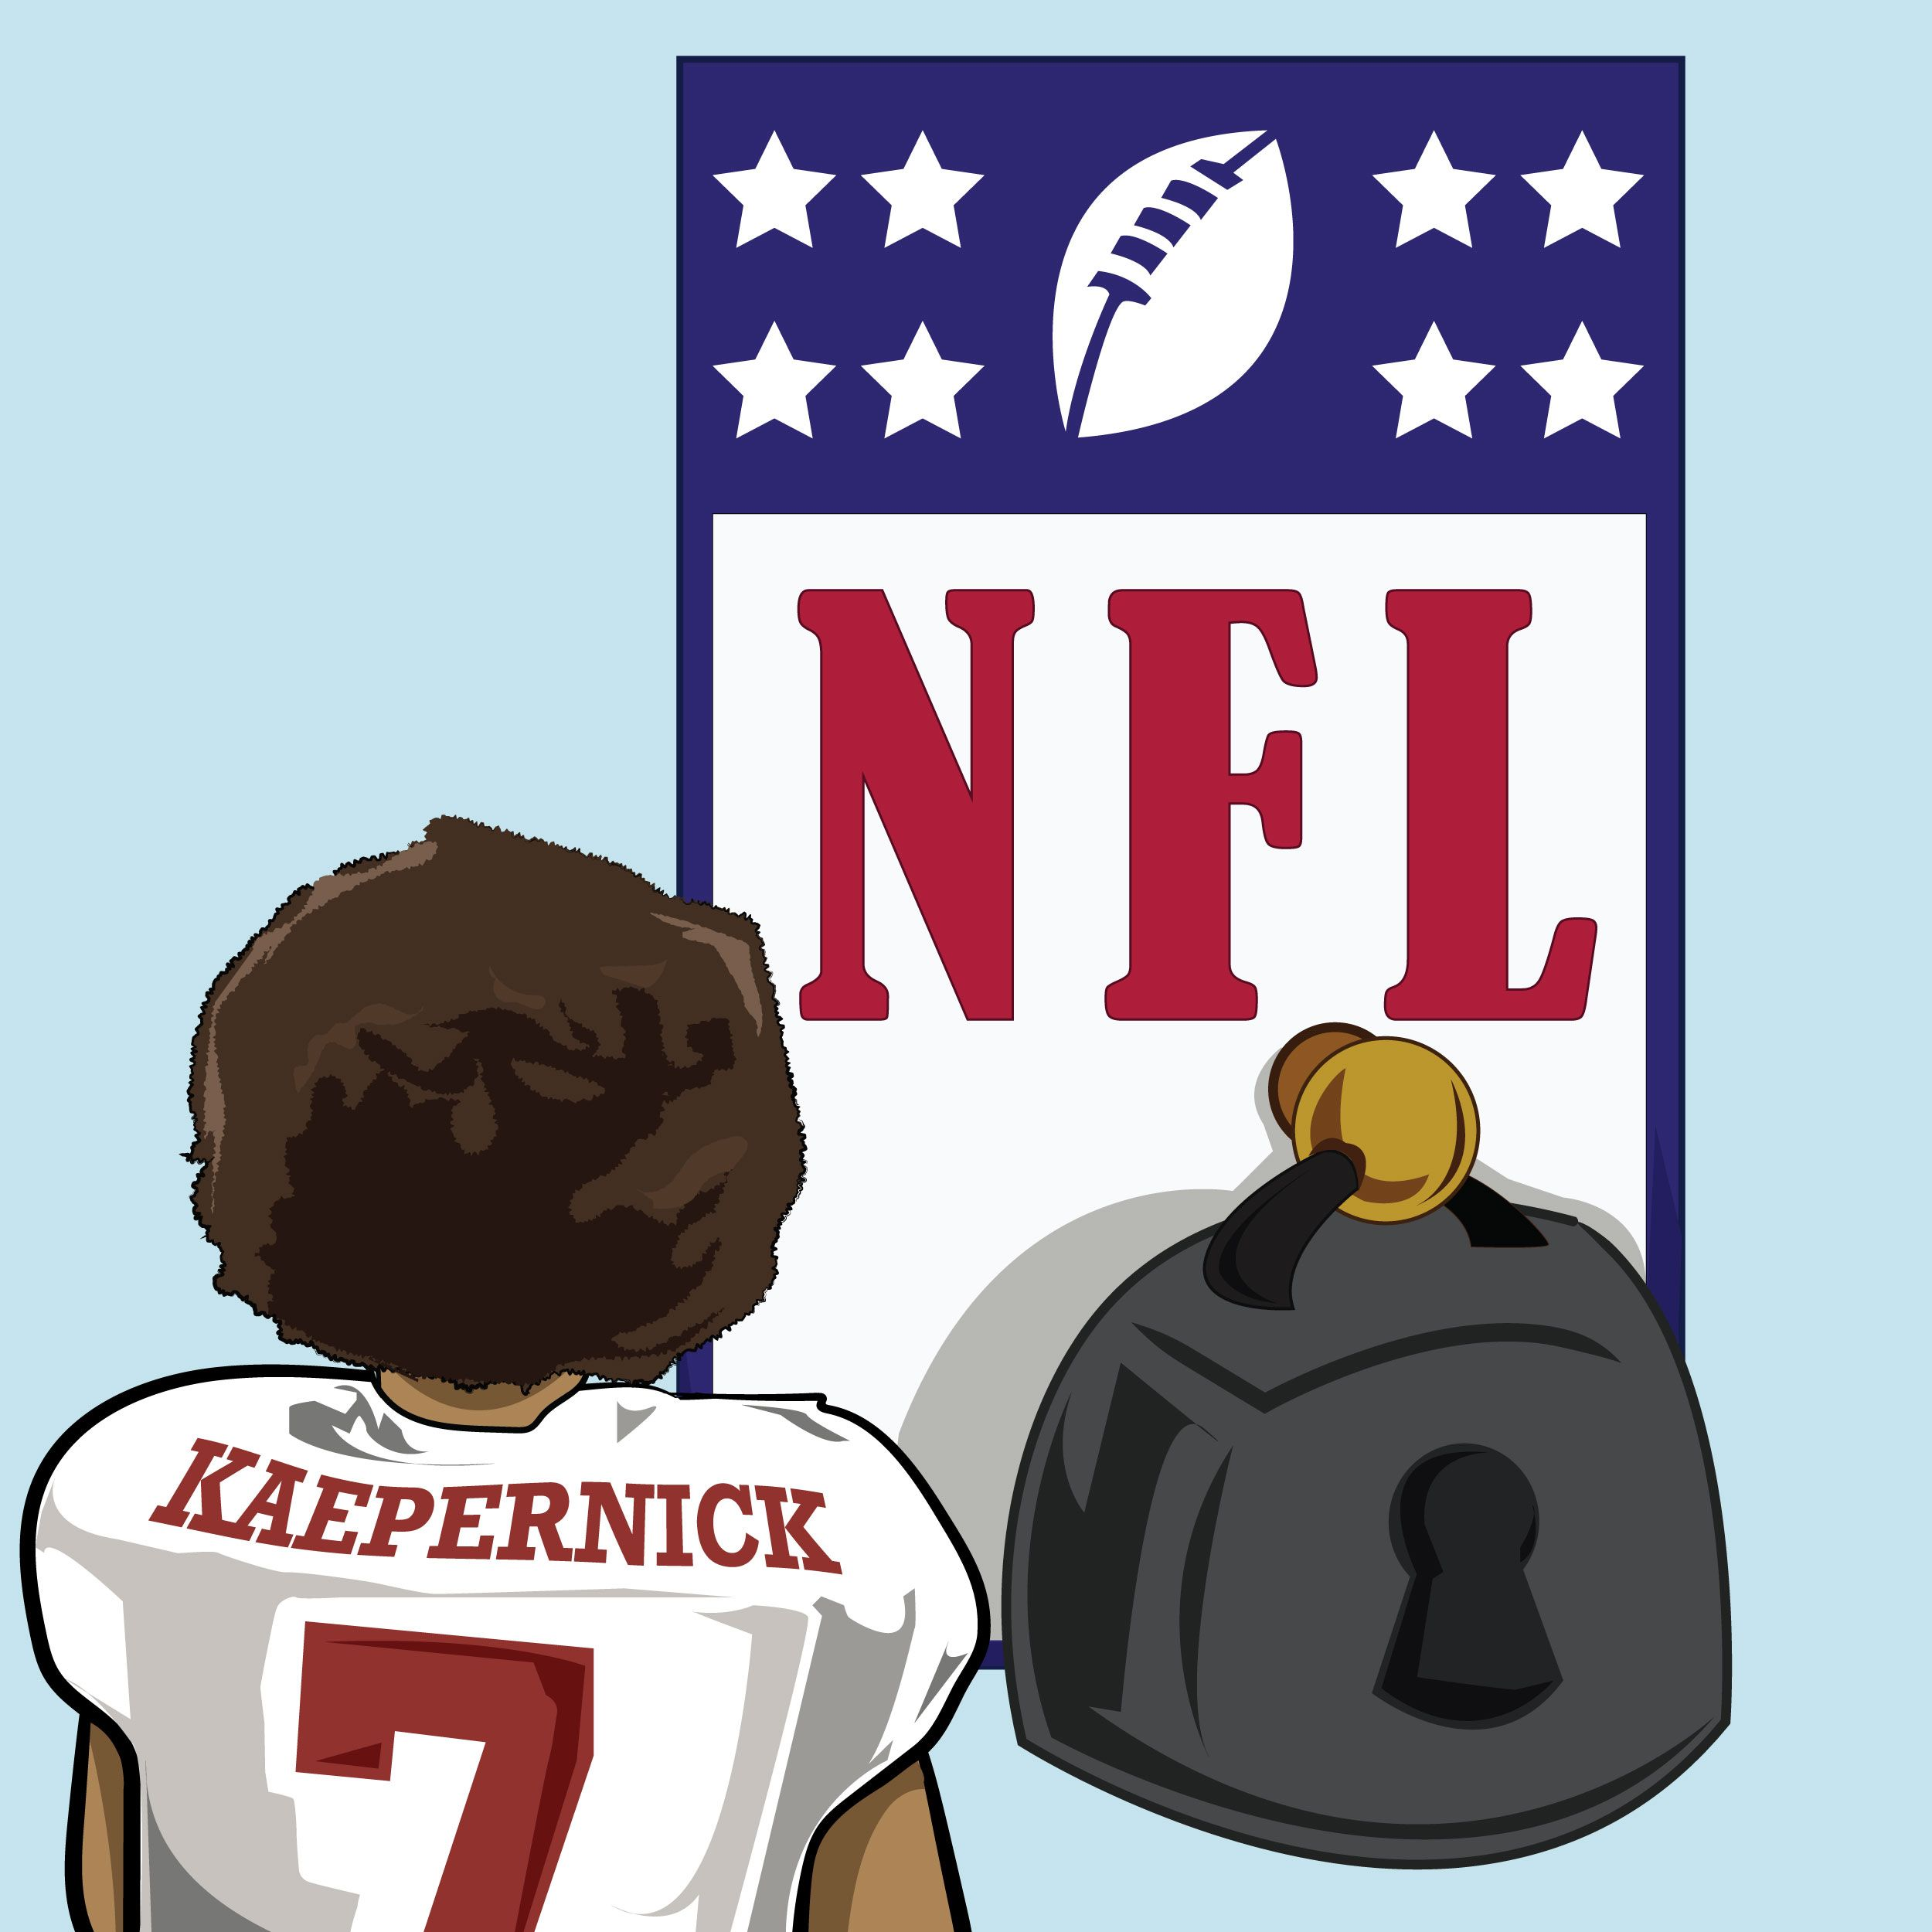 Colin Kaepernick has started a movement. See more artwork on.